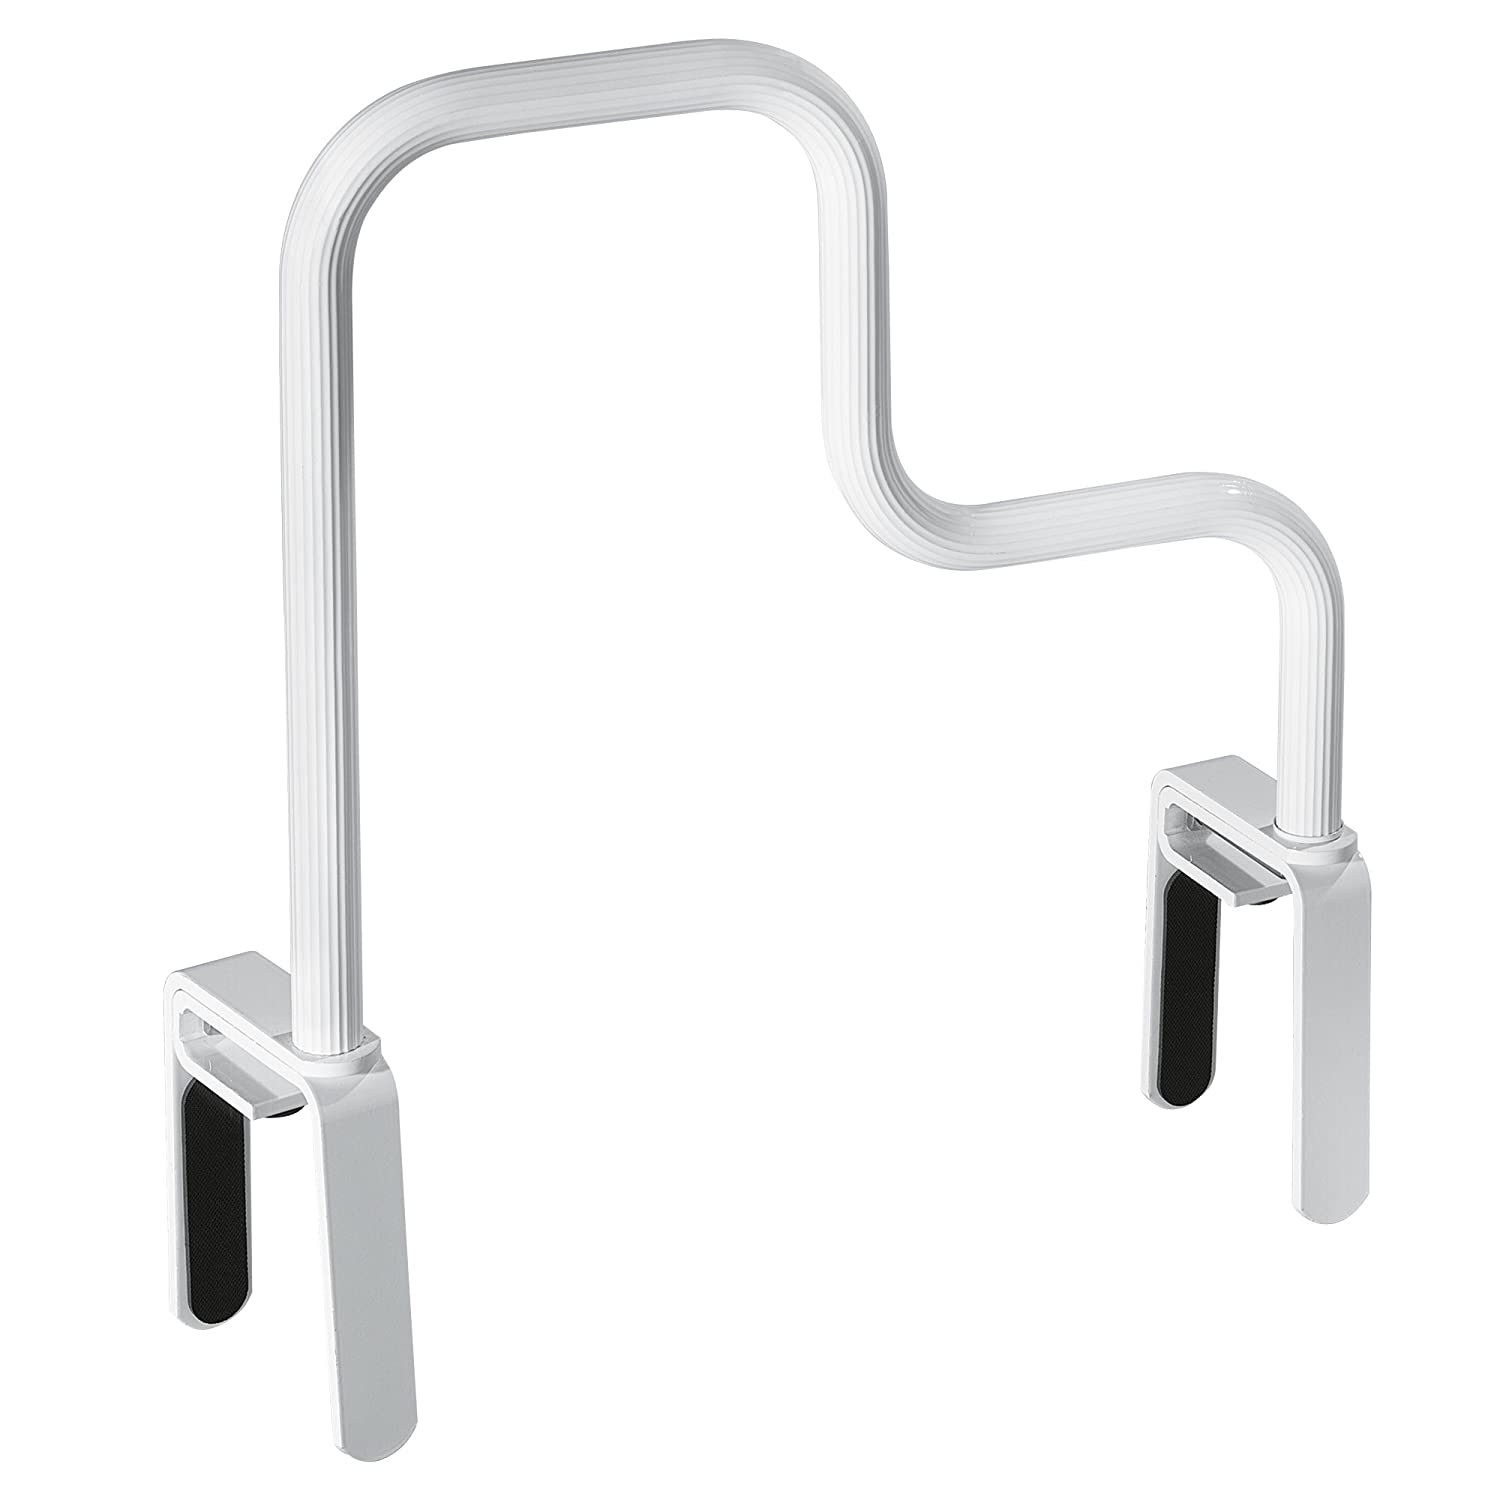 p in drive rail safety grips bathtub grab x bars bar white adj